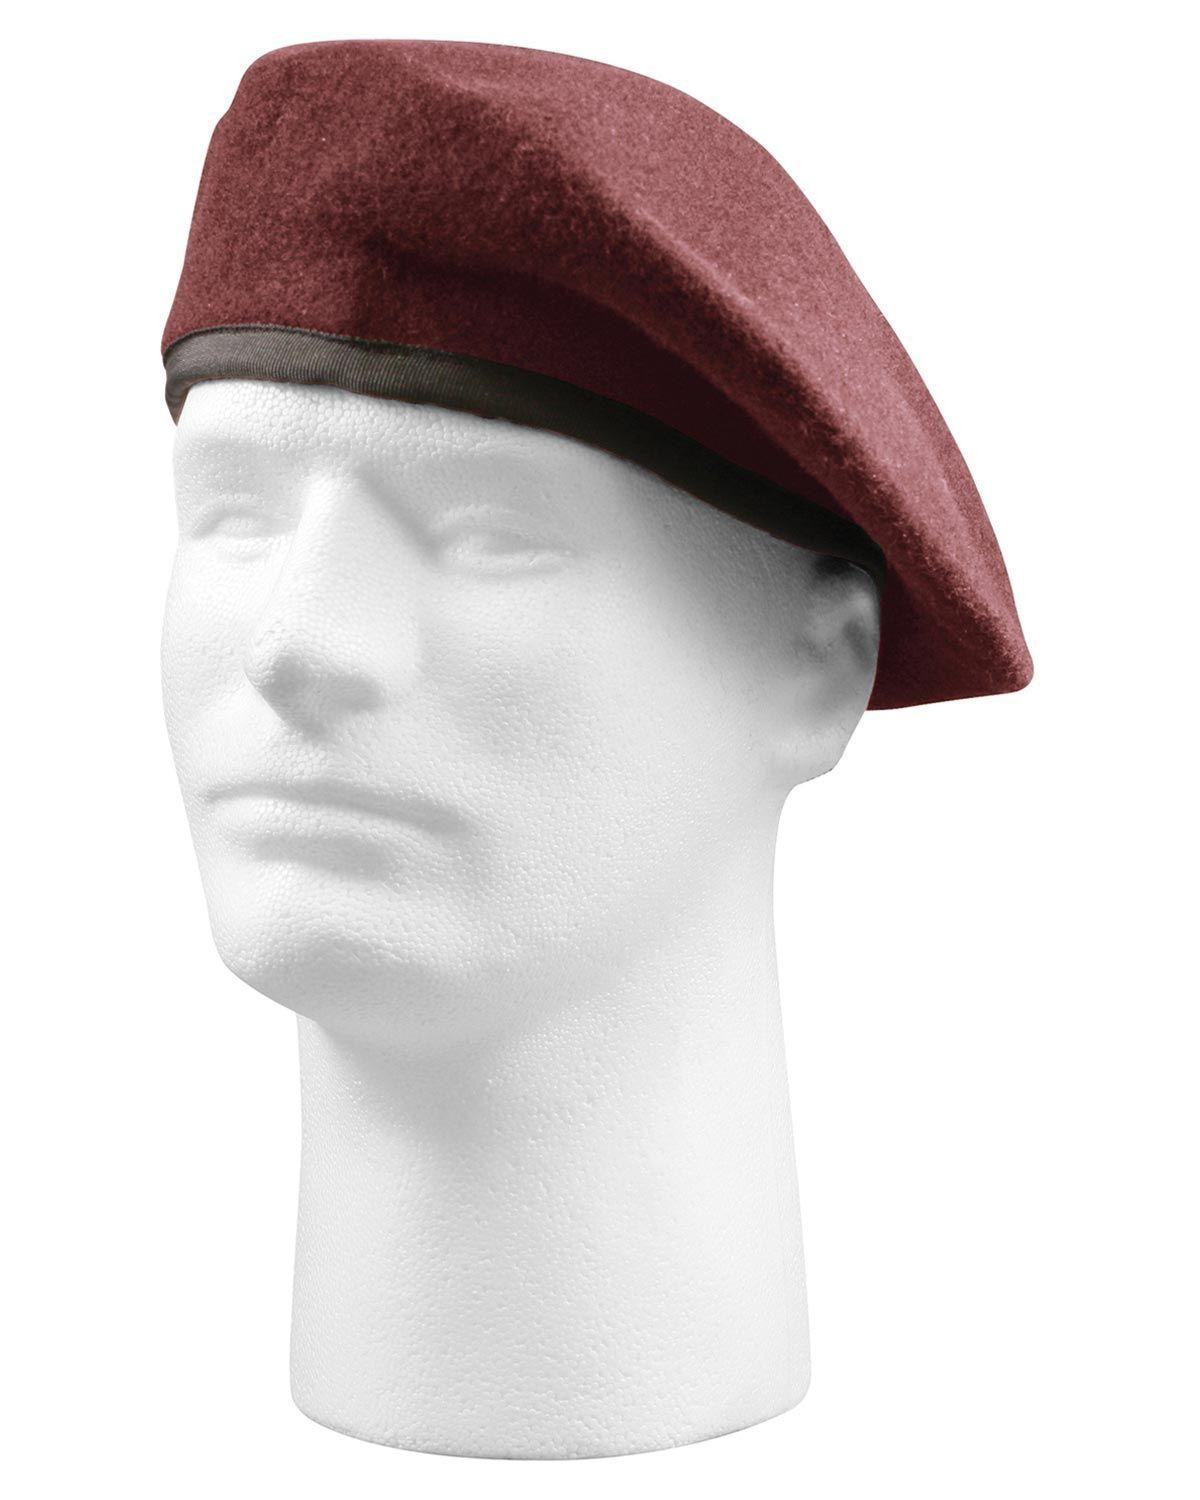 Image of   Rothco Beret - Military Specifications (Maroon, US 6.1/2 / EU 52 cm)